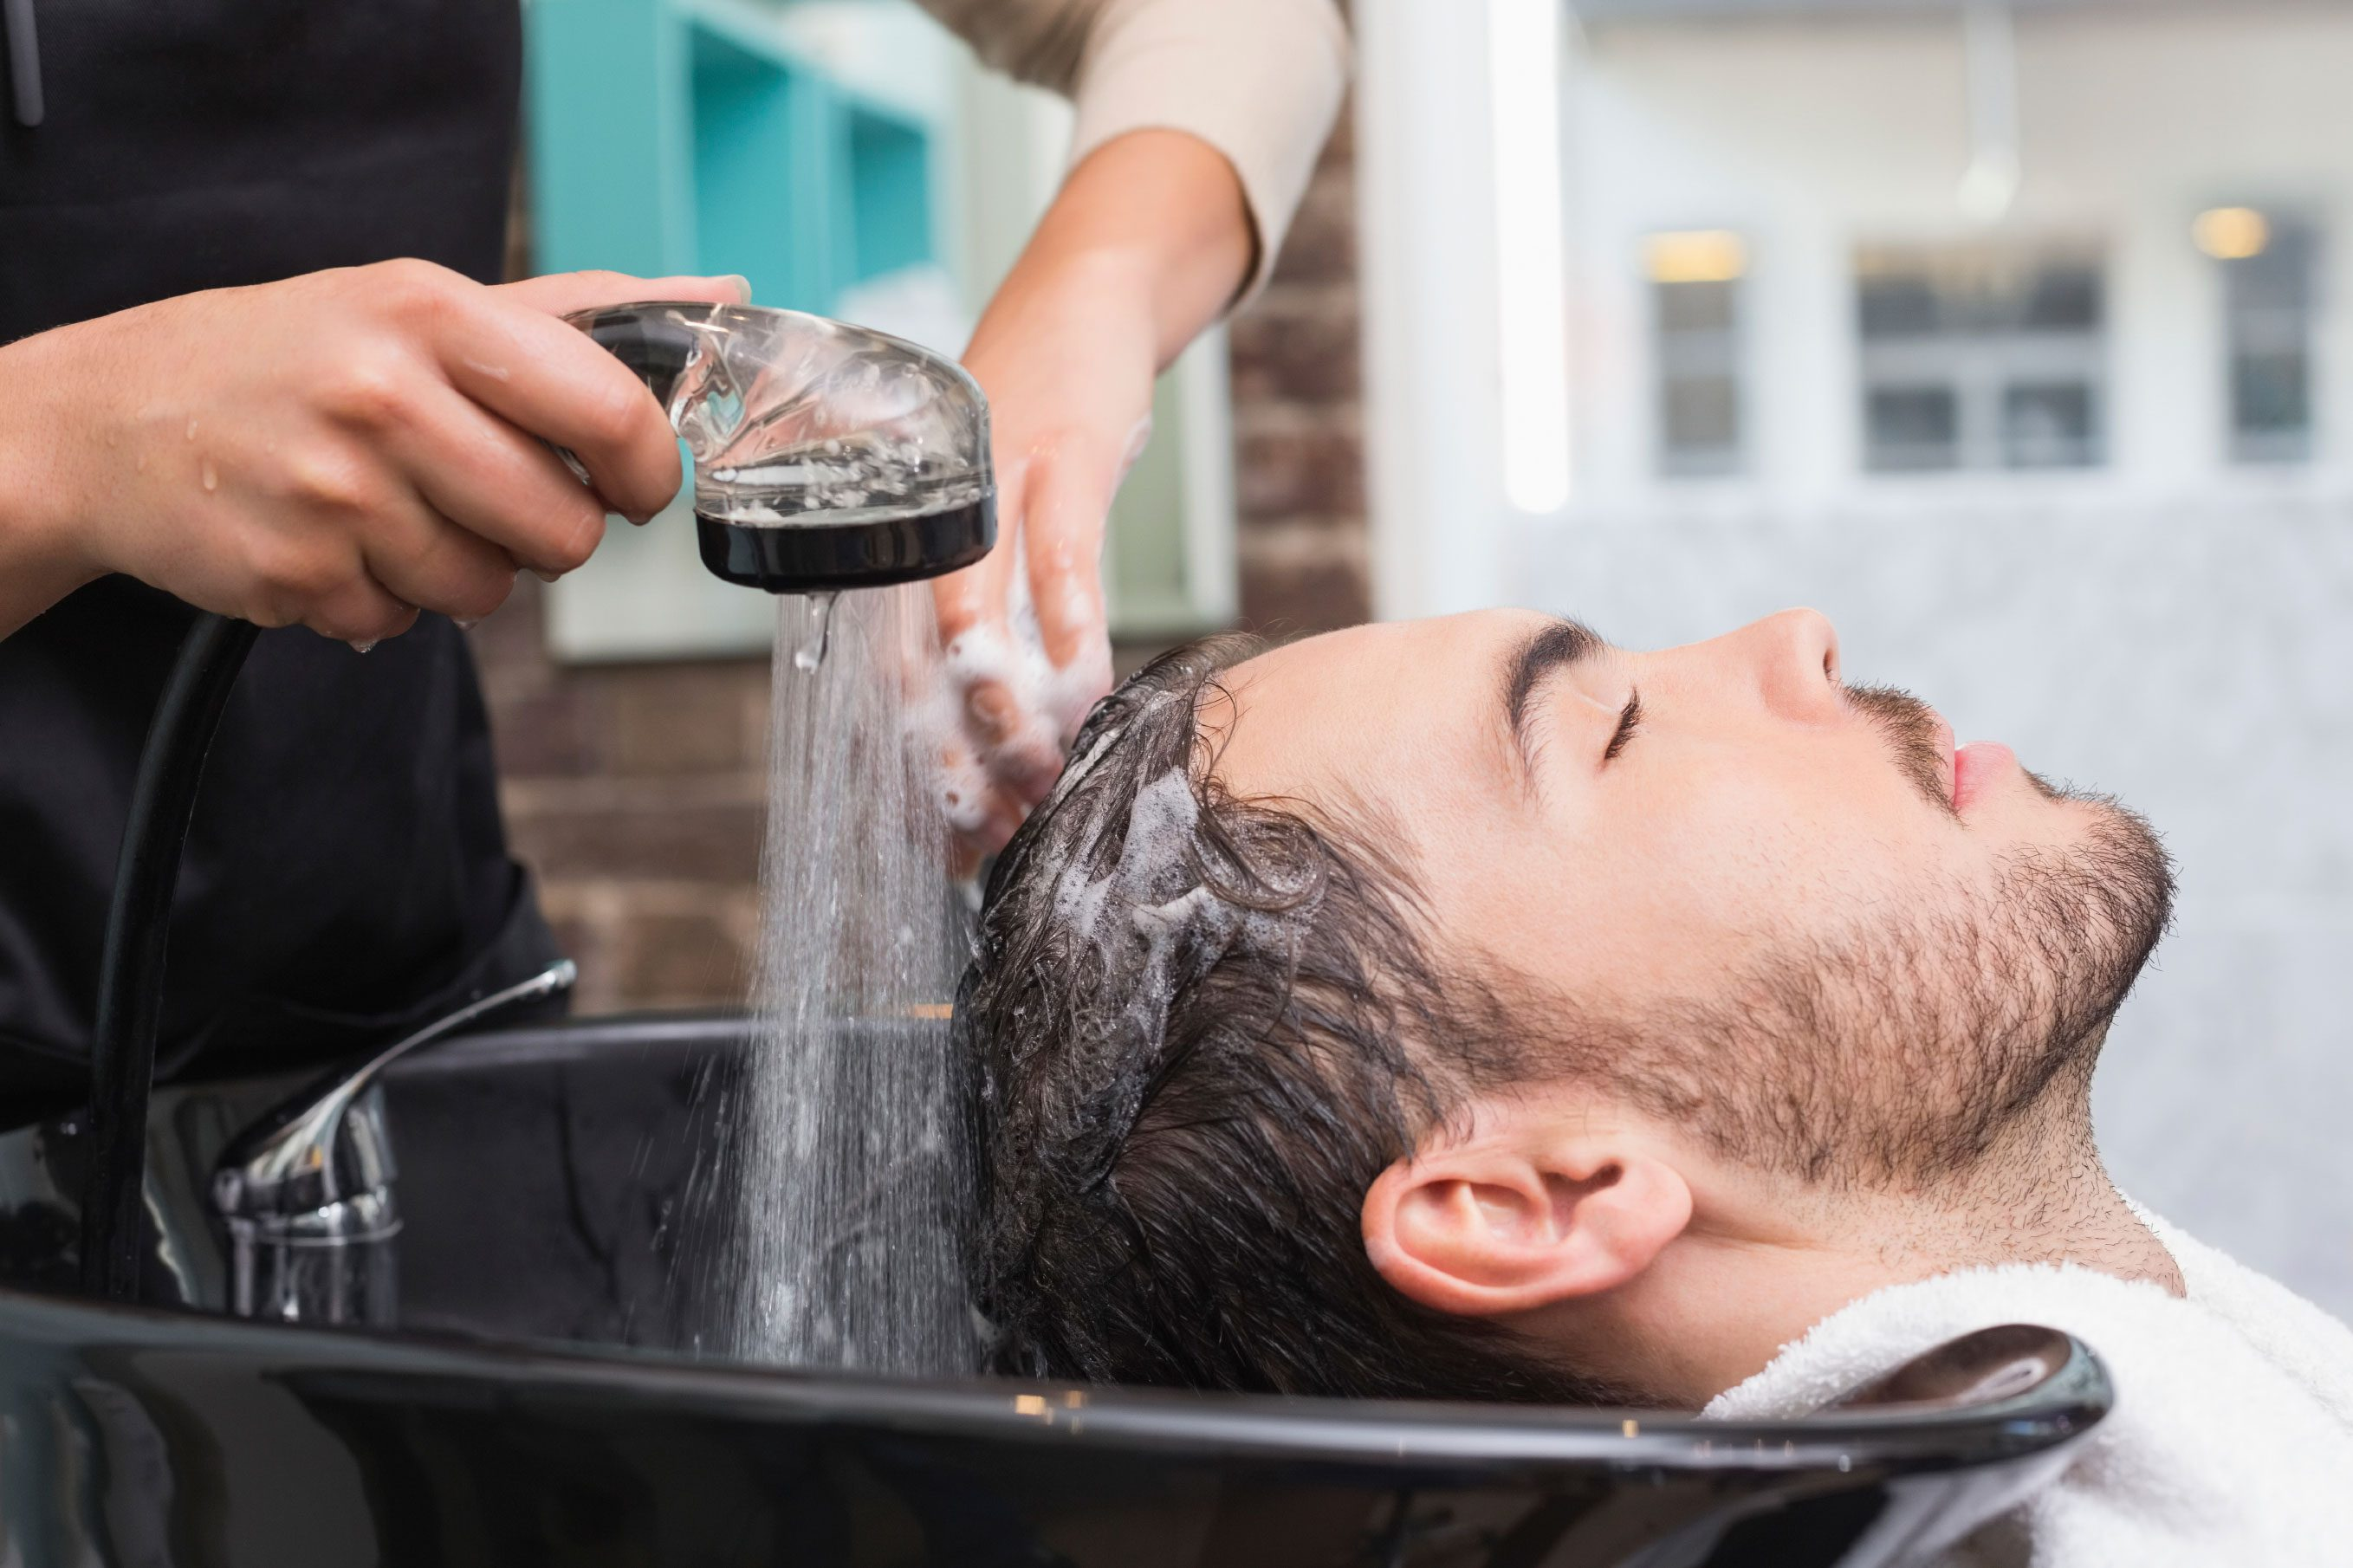 What equipment does a hairdresser need